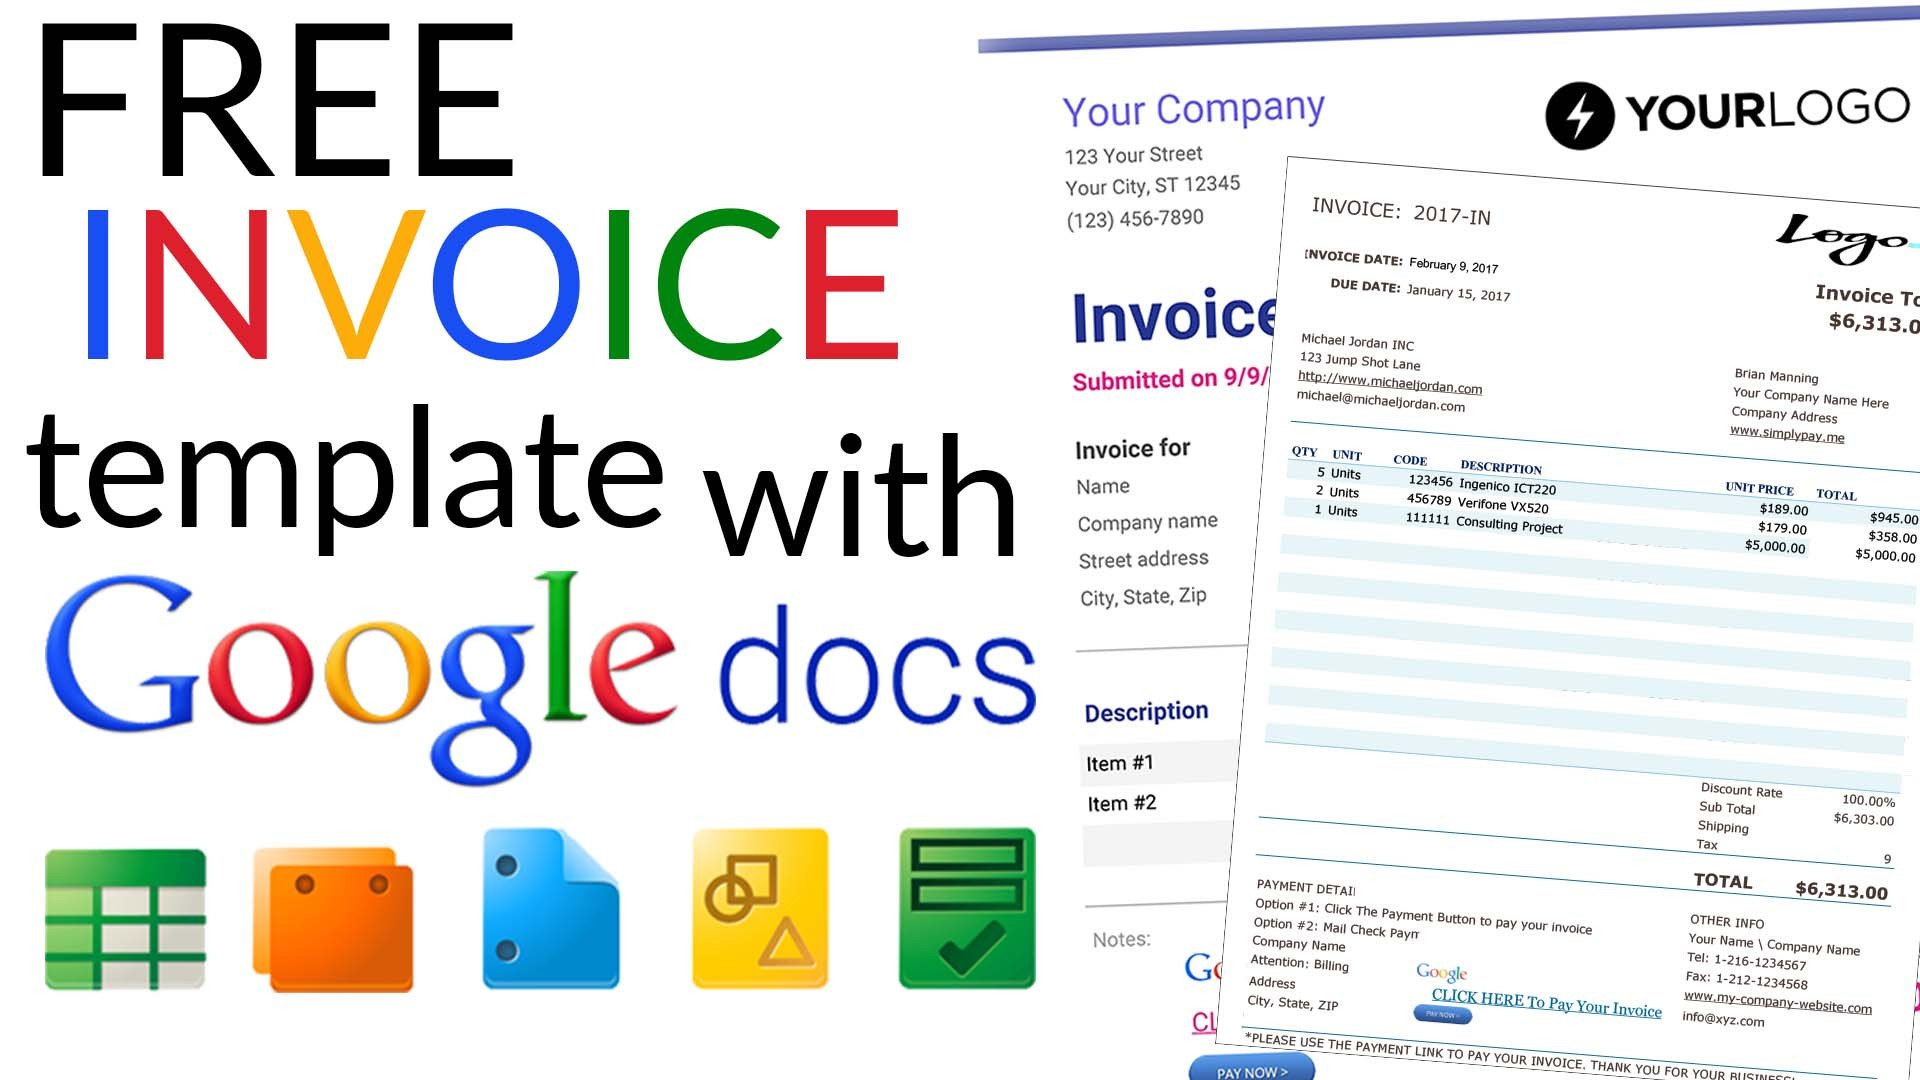 Free Google Doc Templates Free Invoice Templates with Google Docs